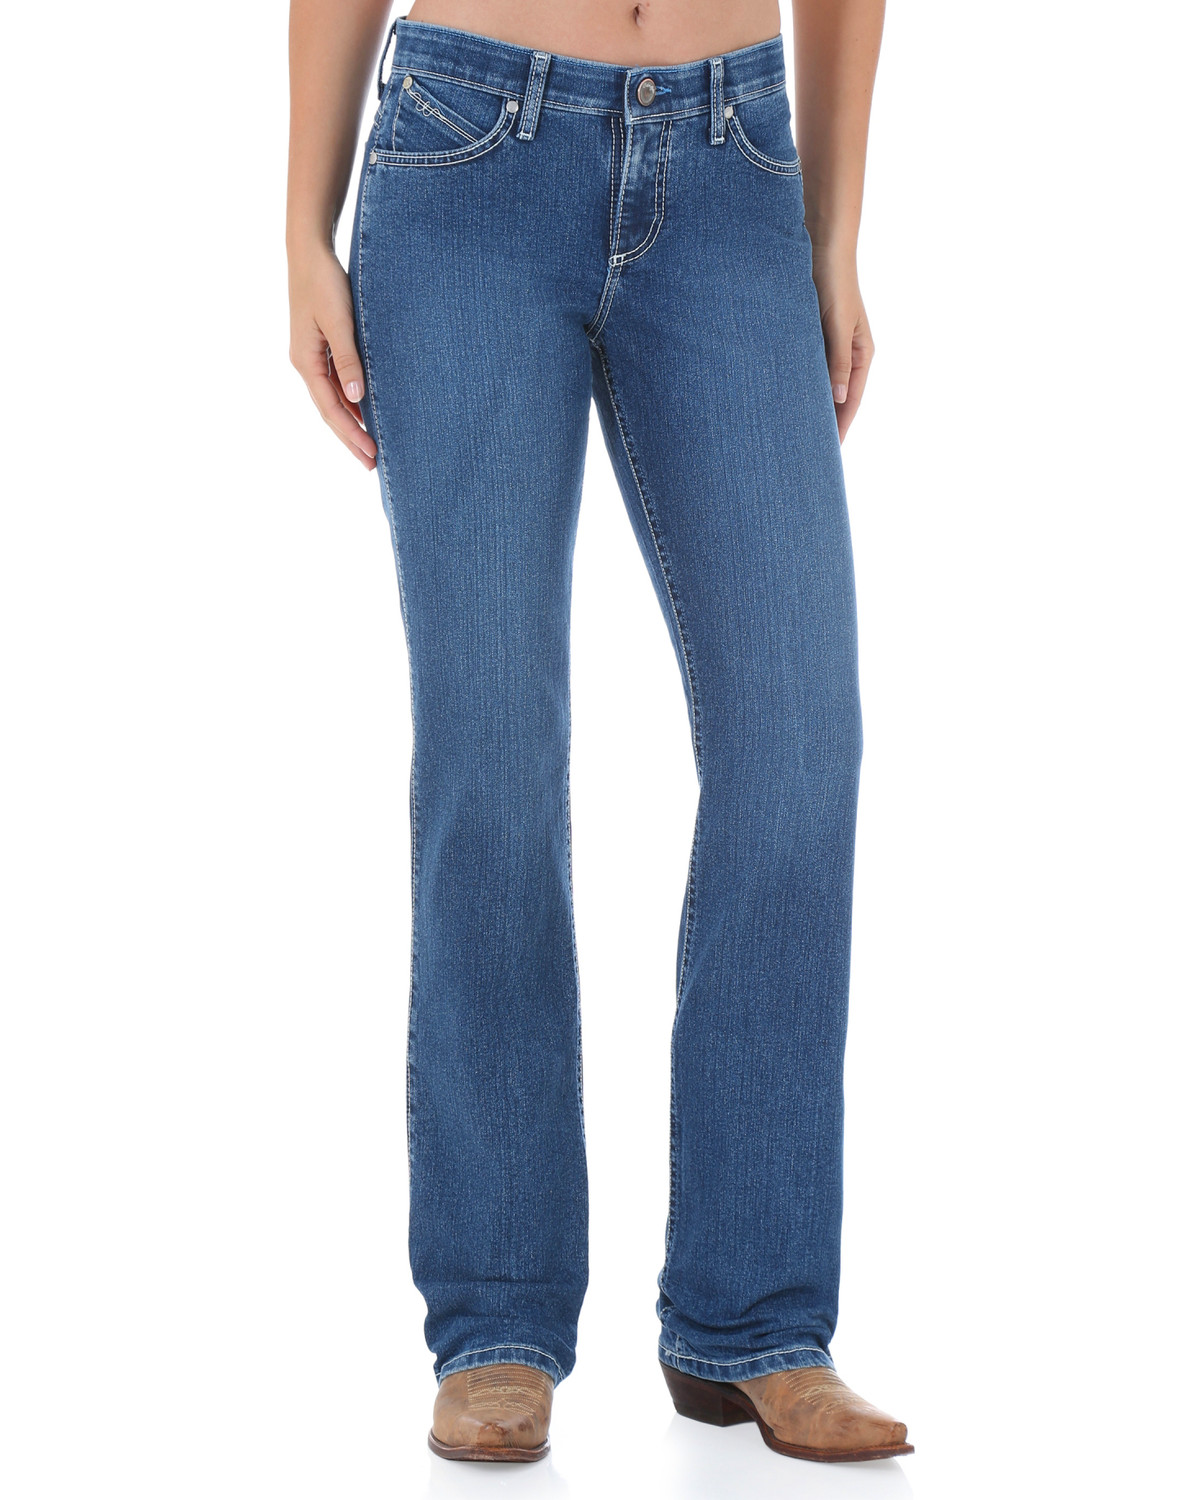 Wrangler Women S Q Baby Cool Vantage Ultimate Riding Jeans Boot Barn